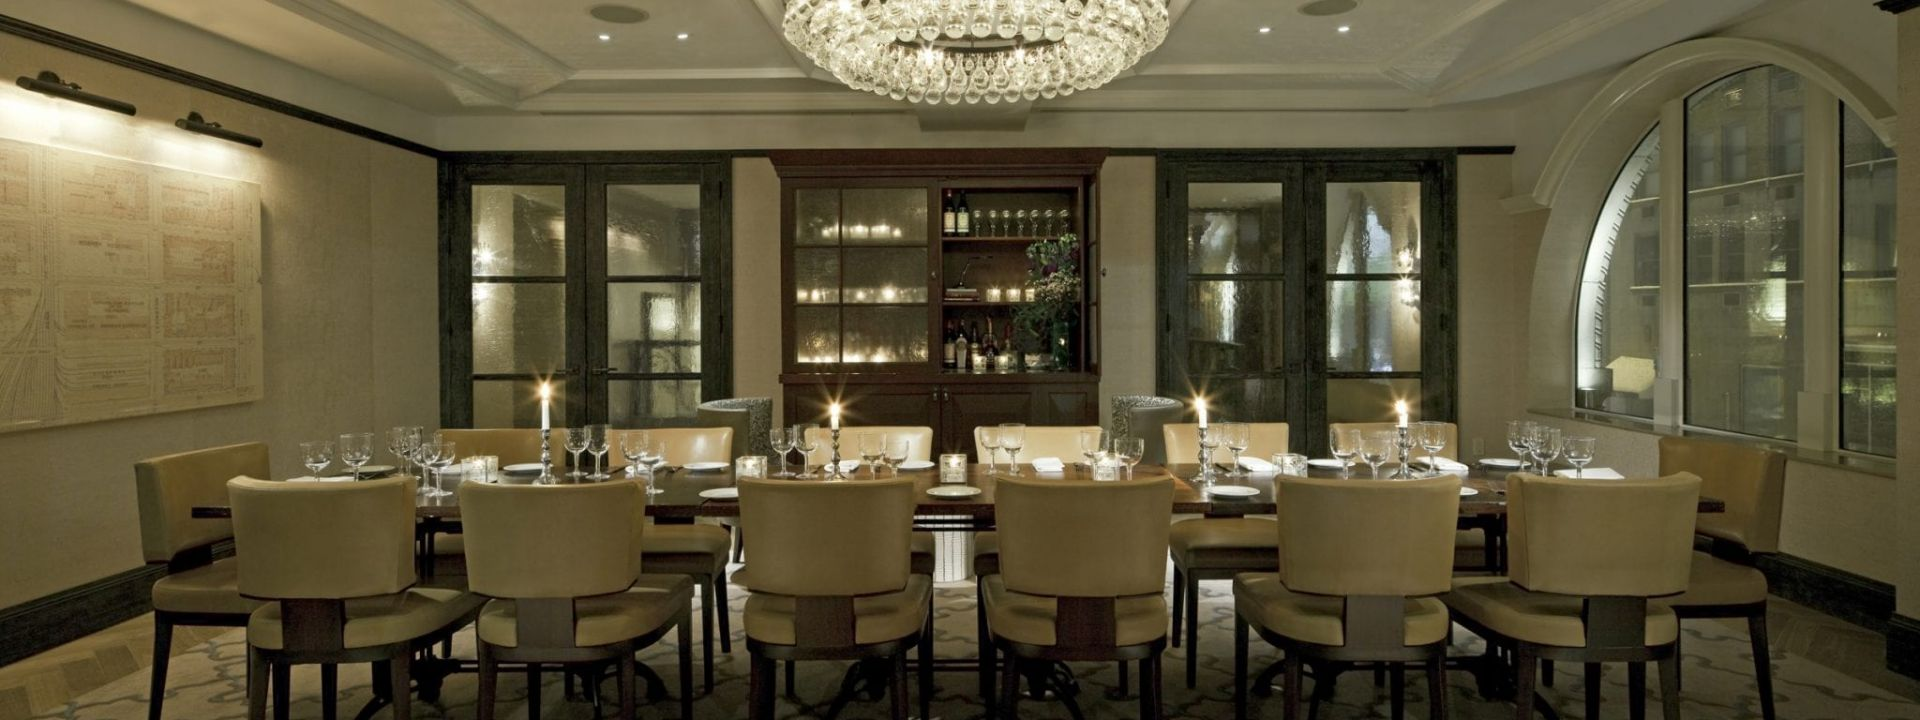 The Corner Private Dining Room at The Benjamin Hotel NYC